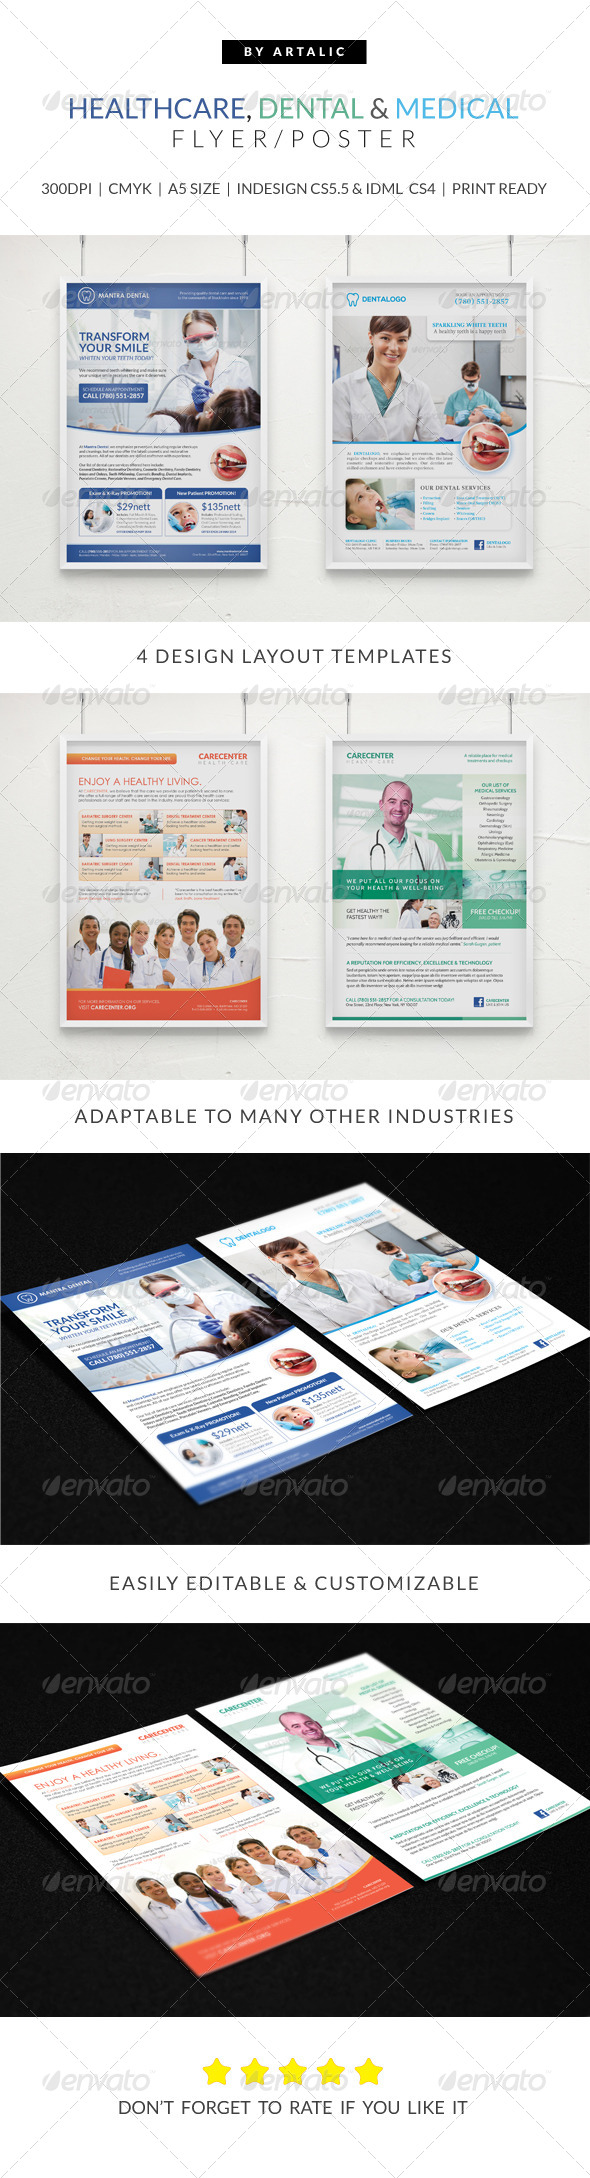 pharmacy brochure template - healthcare medical dental flyer poster pack by artalic